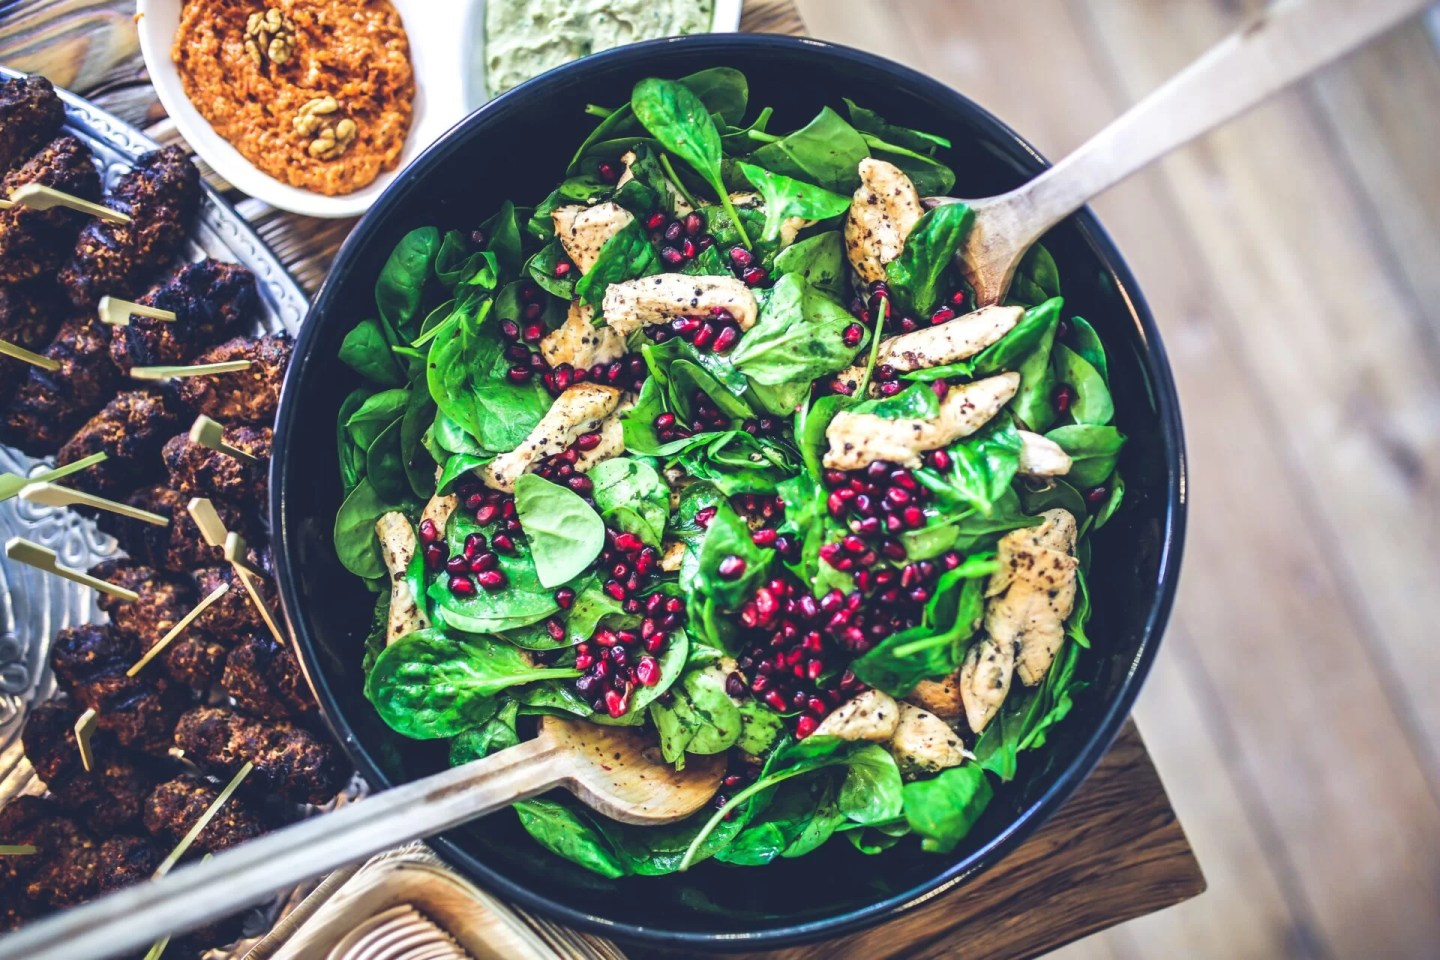 How To Take Control Of Your Health & Diet